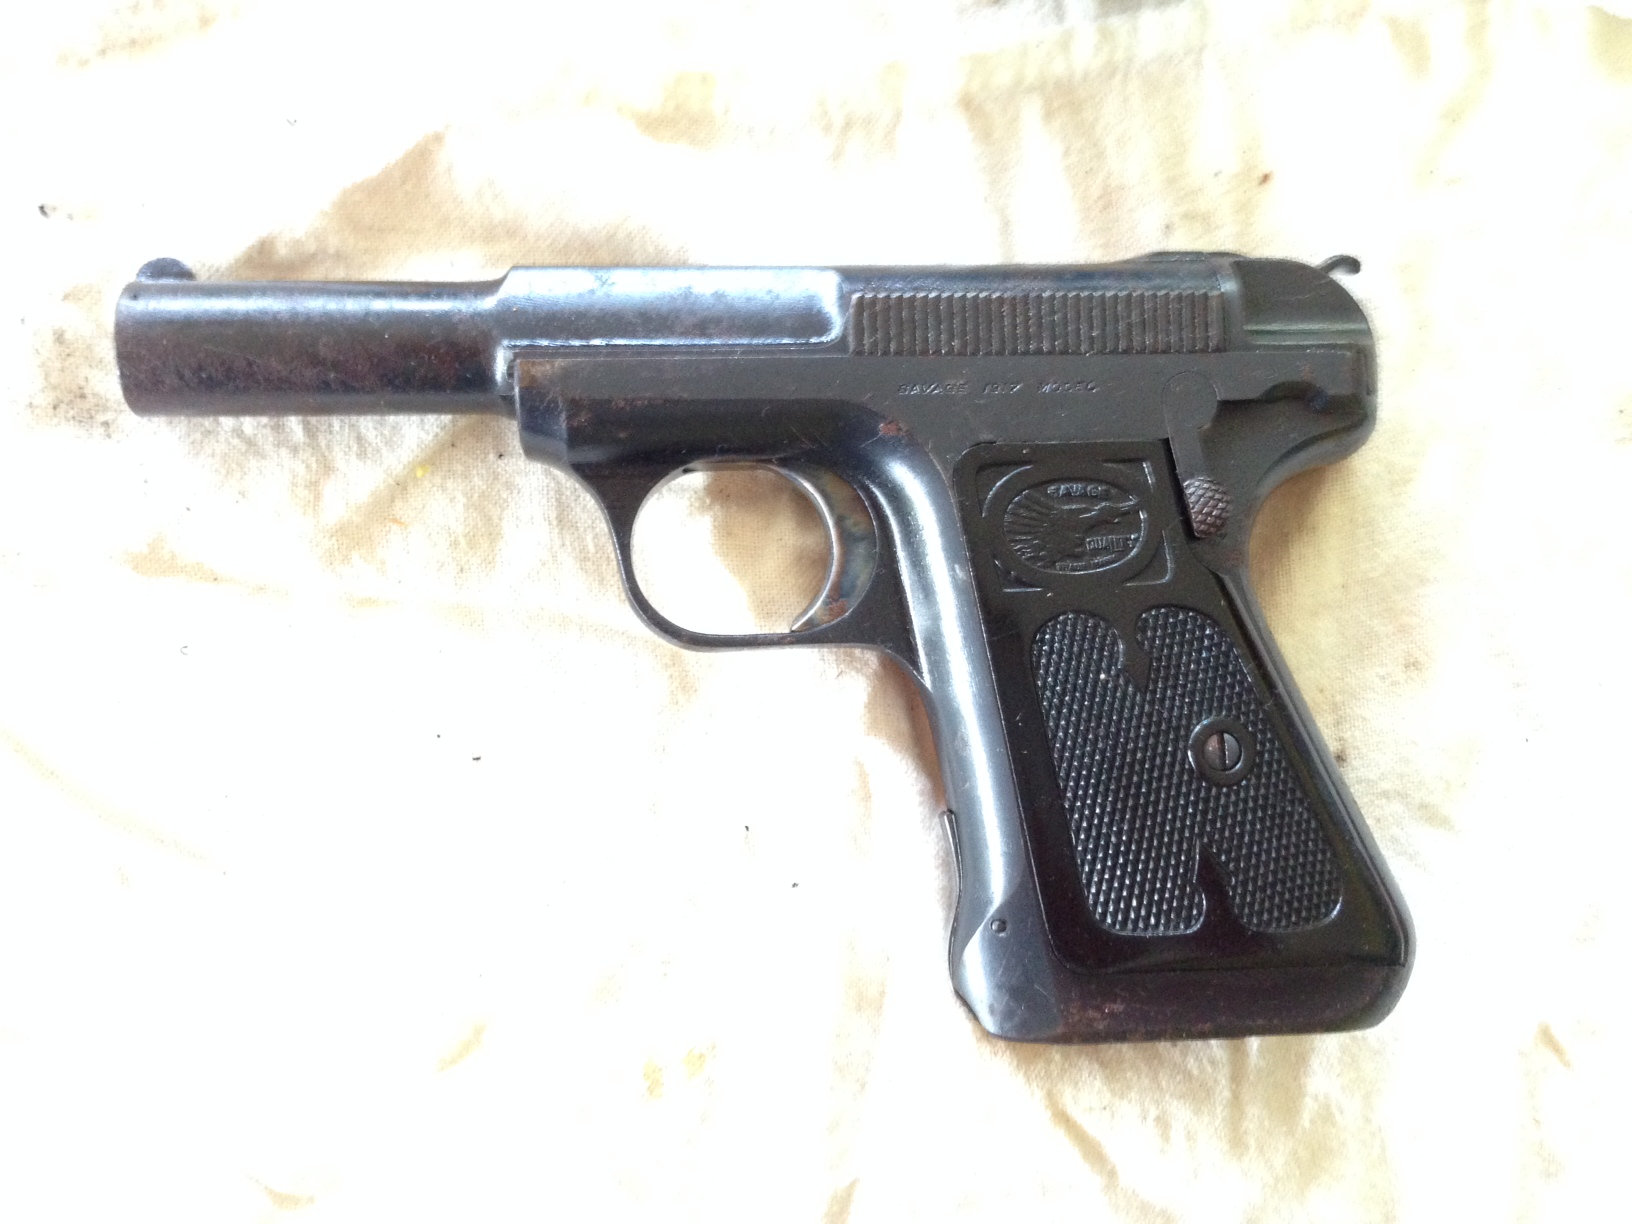 I found two old  32 cal auto pistols in my father's attic after he